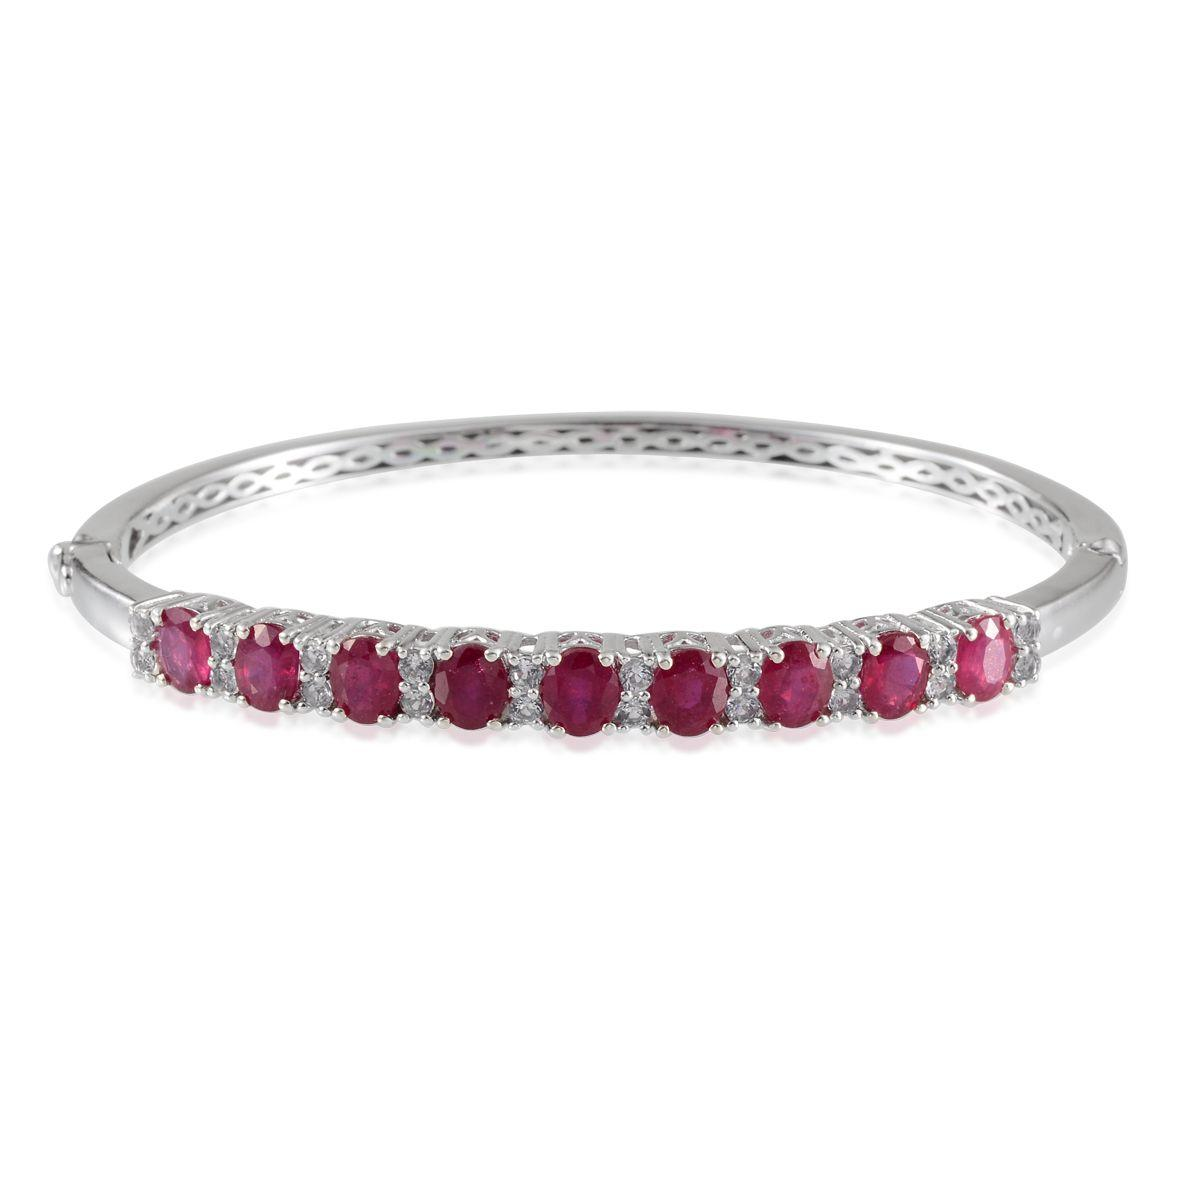 Niassa Ruby, White Topaz Platinum Over Sterling Silver Bangle (7.5 in) TGW 9.97 Cts.